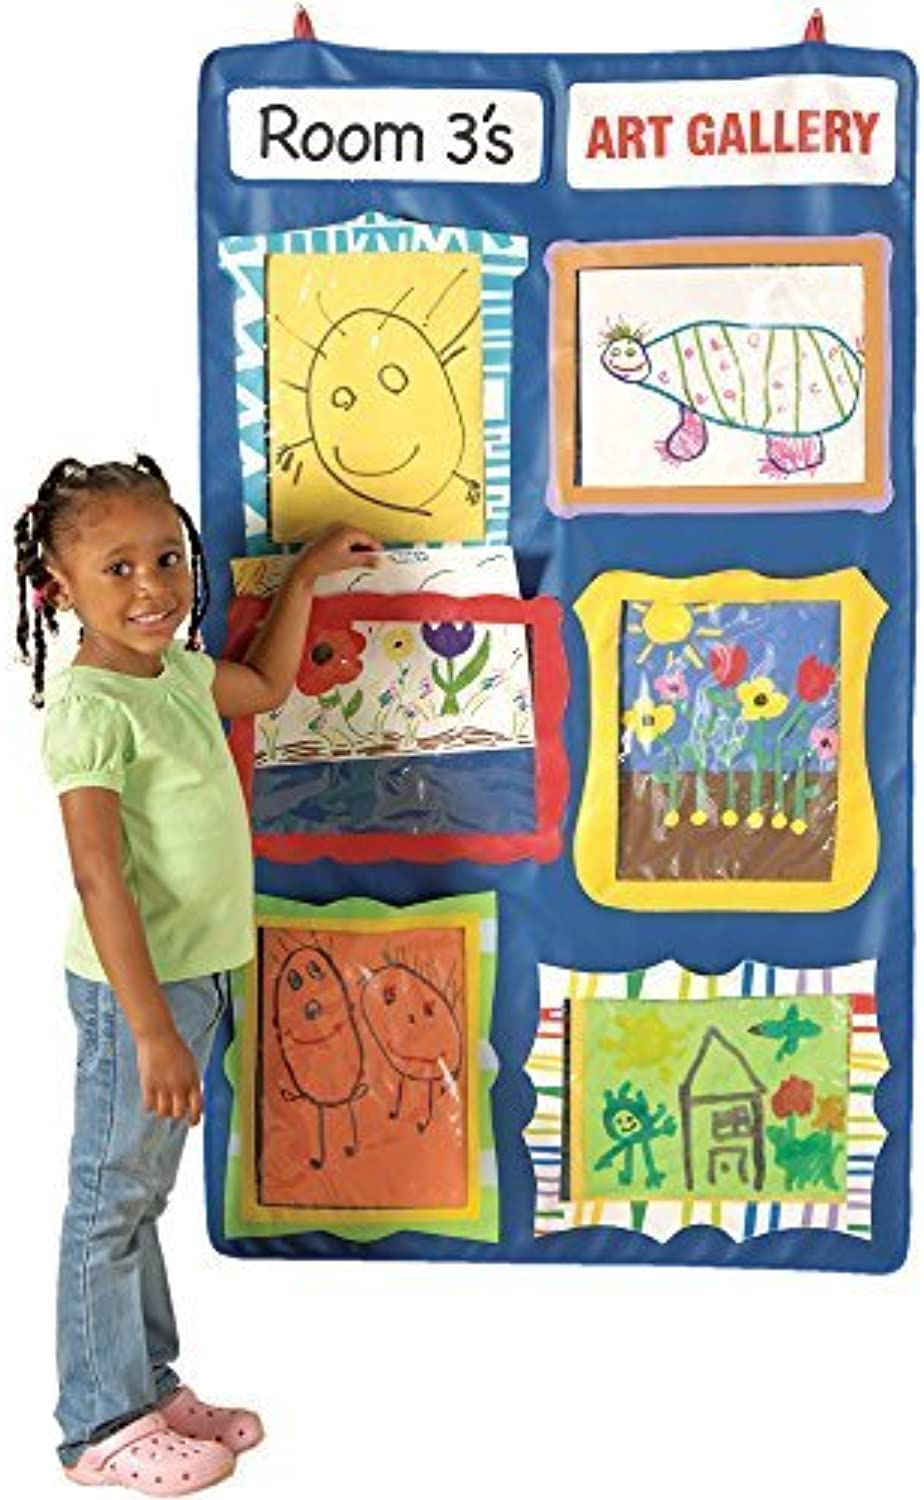 CP Toys Portable 4 ft. Hanging Art Gallery with 6 Picture Slots by Constructive Playthings